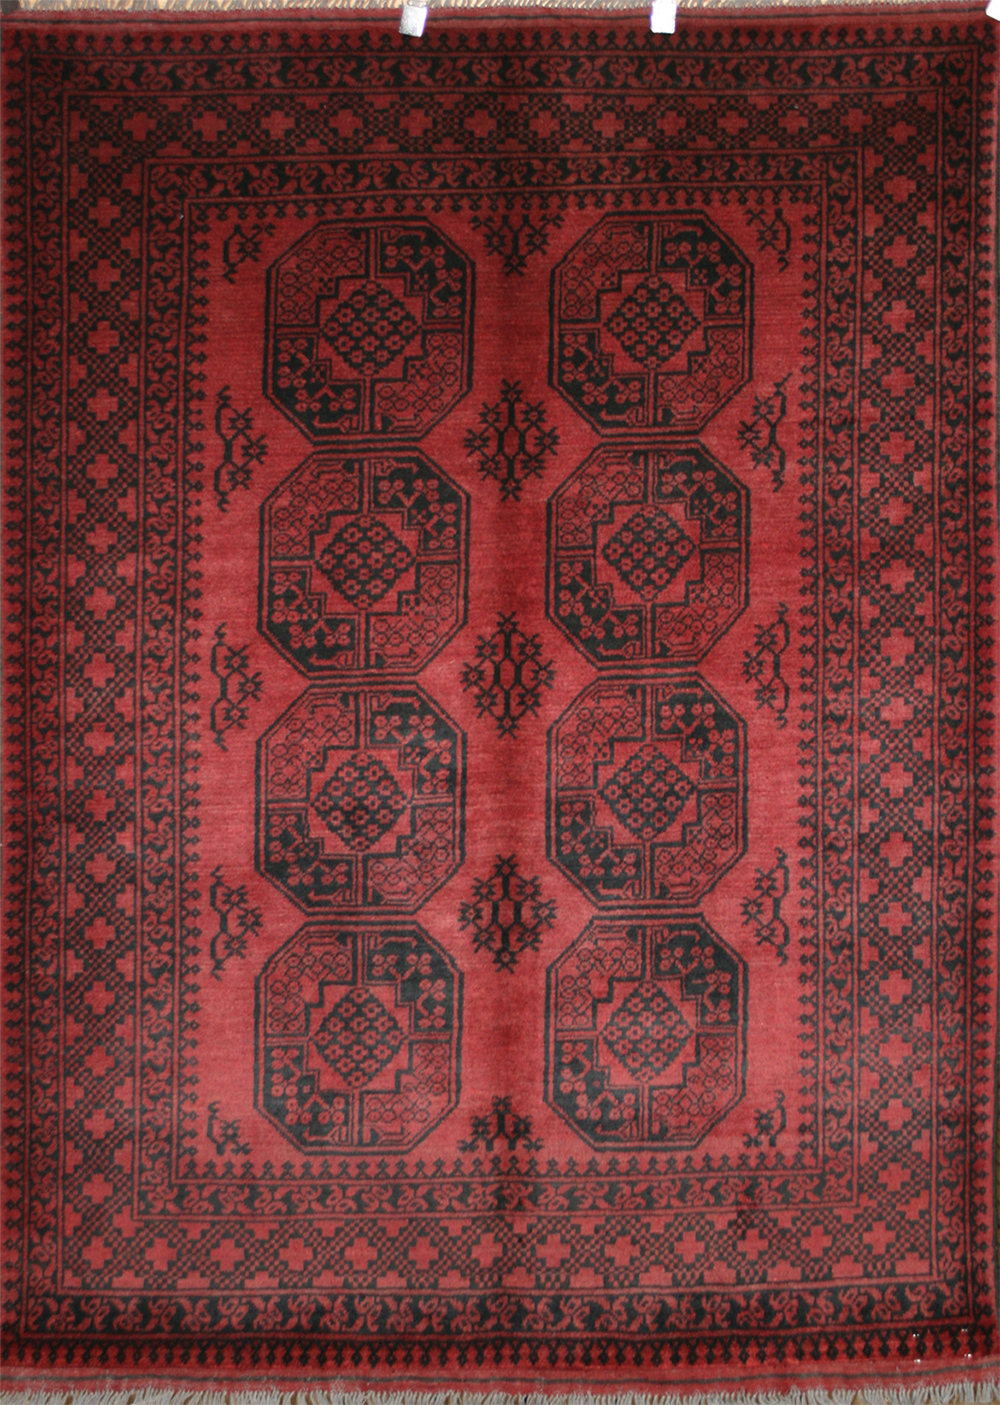 A unique Khal Mohammadi design